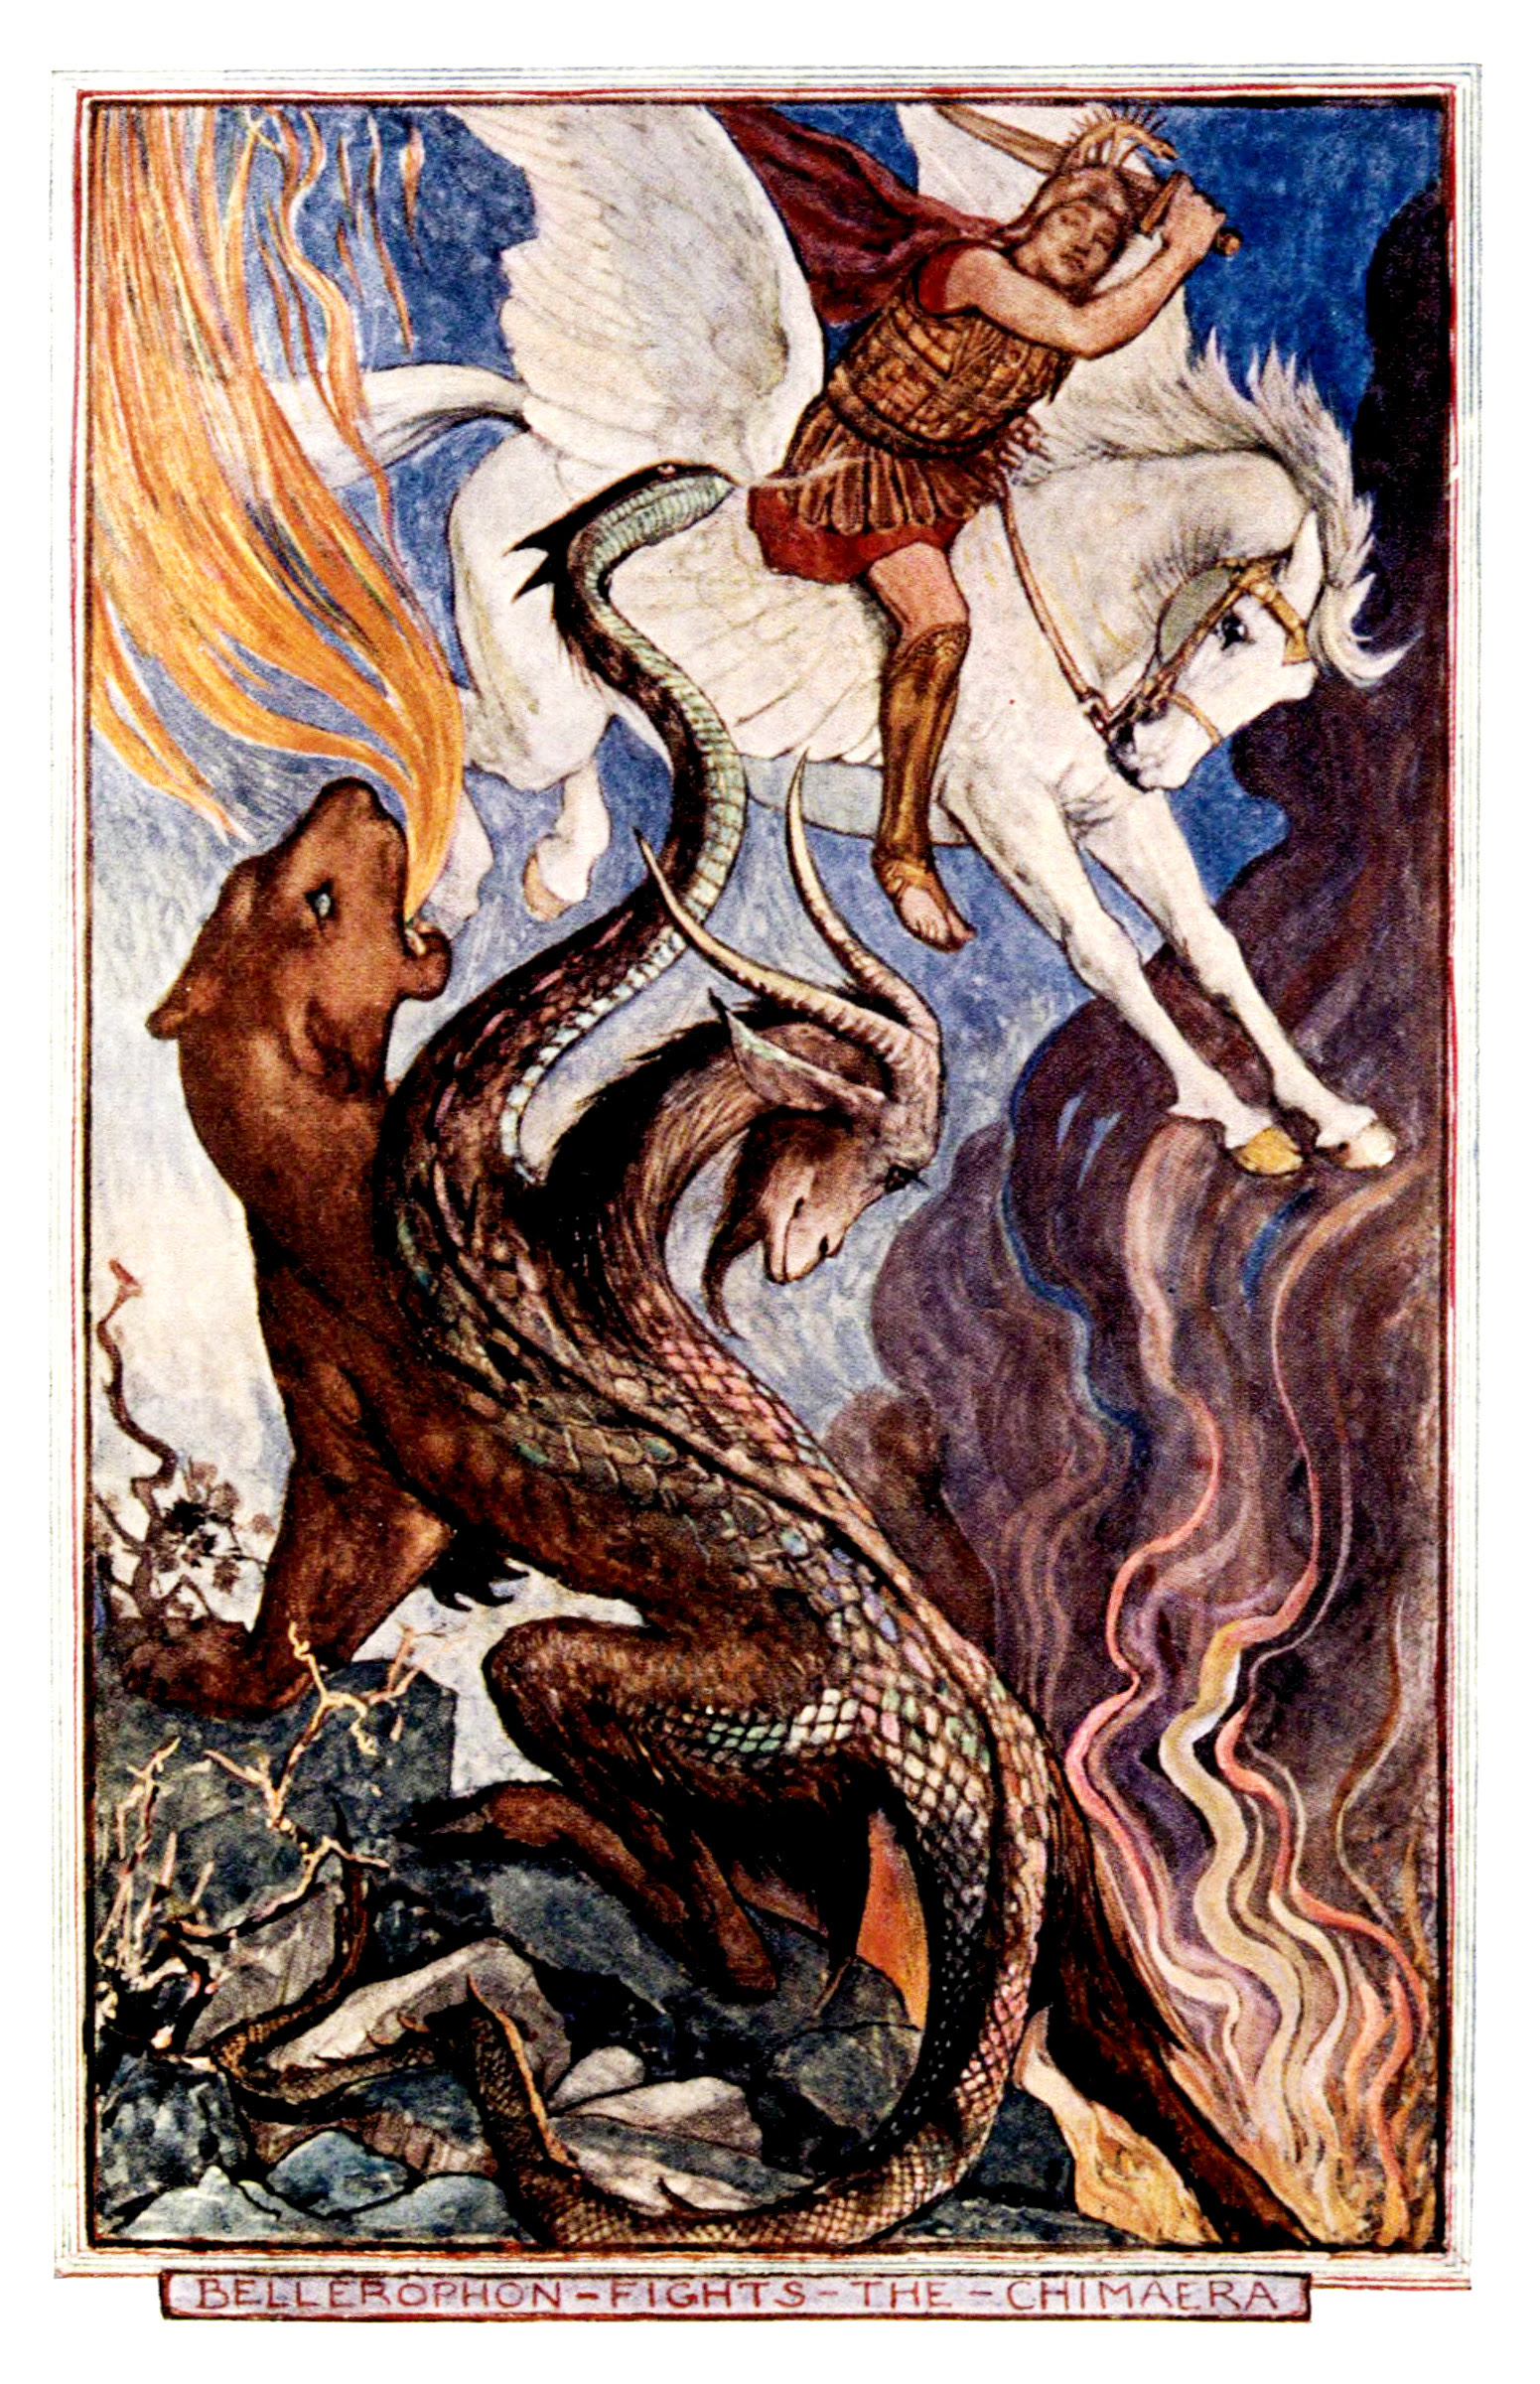 Henry Justice Ford - The all sorts of stories book by Mrs. Lang ; edited by Andrew Lang, 1911 (color plate)